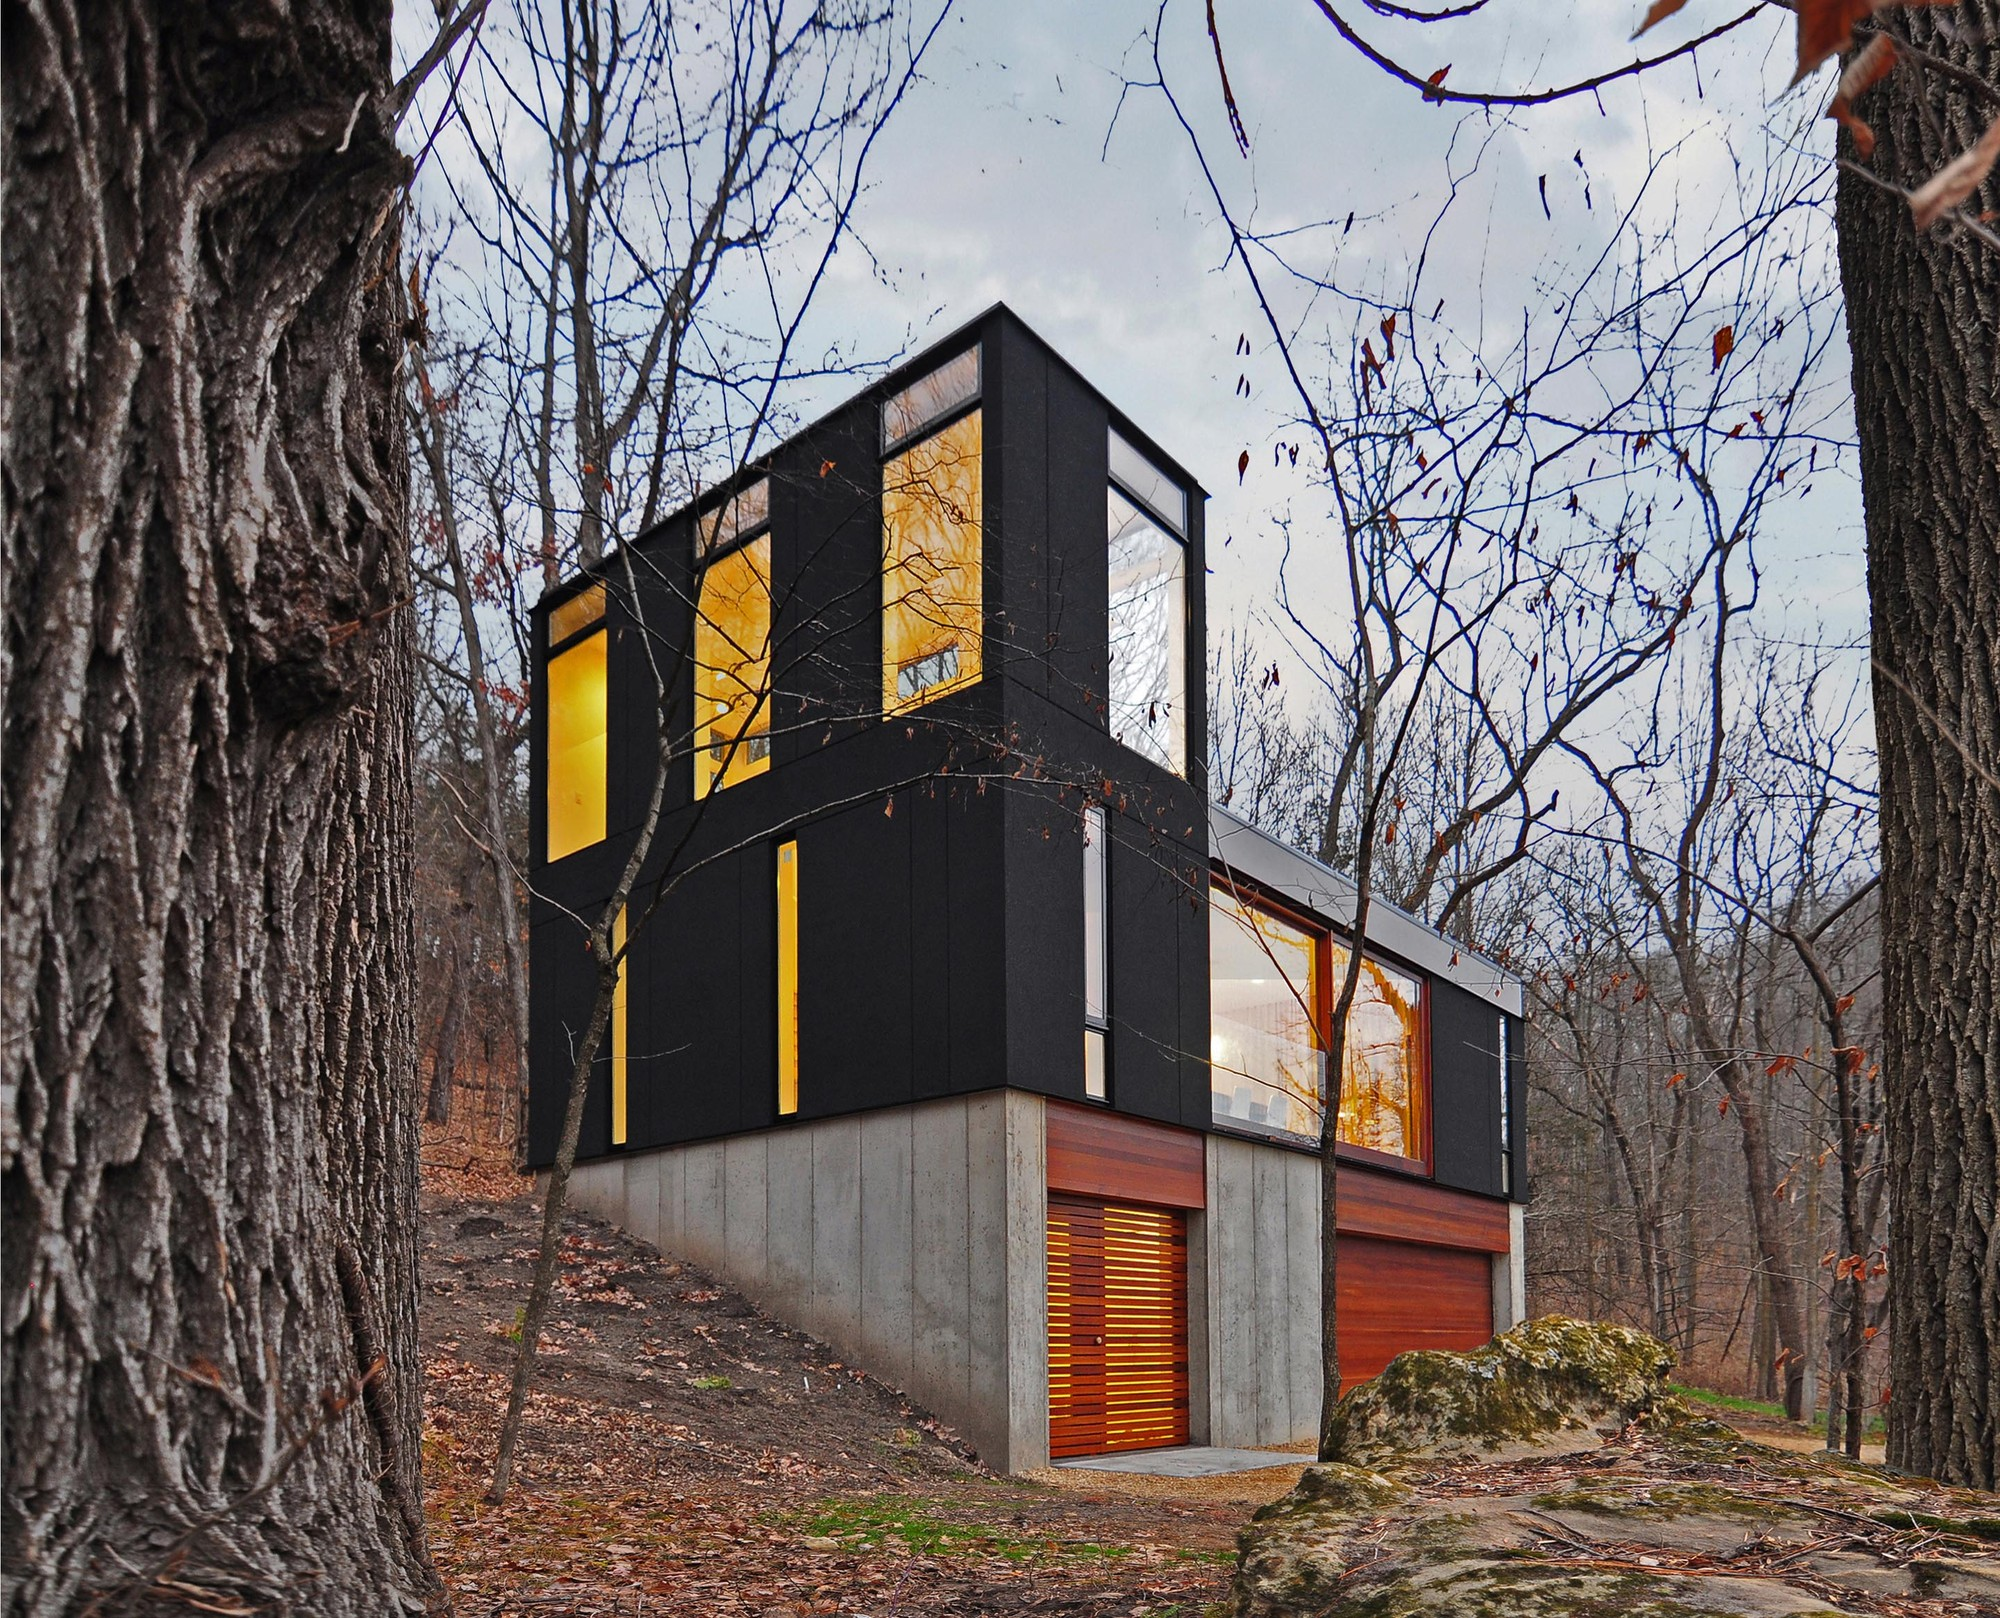 Stacked Cabin / Johnsen Schmaling Architects, © John J. Macaulay